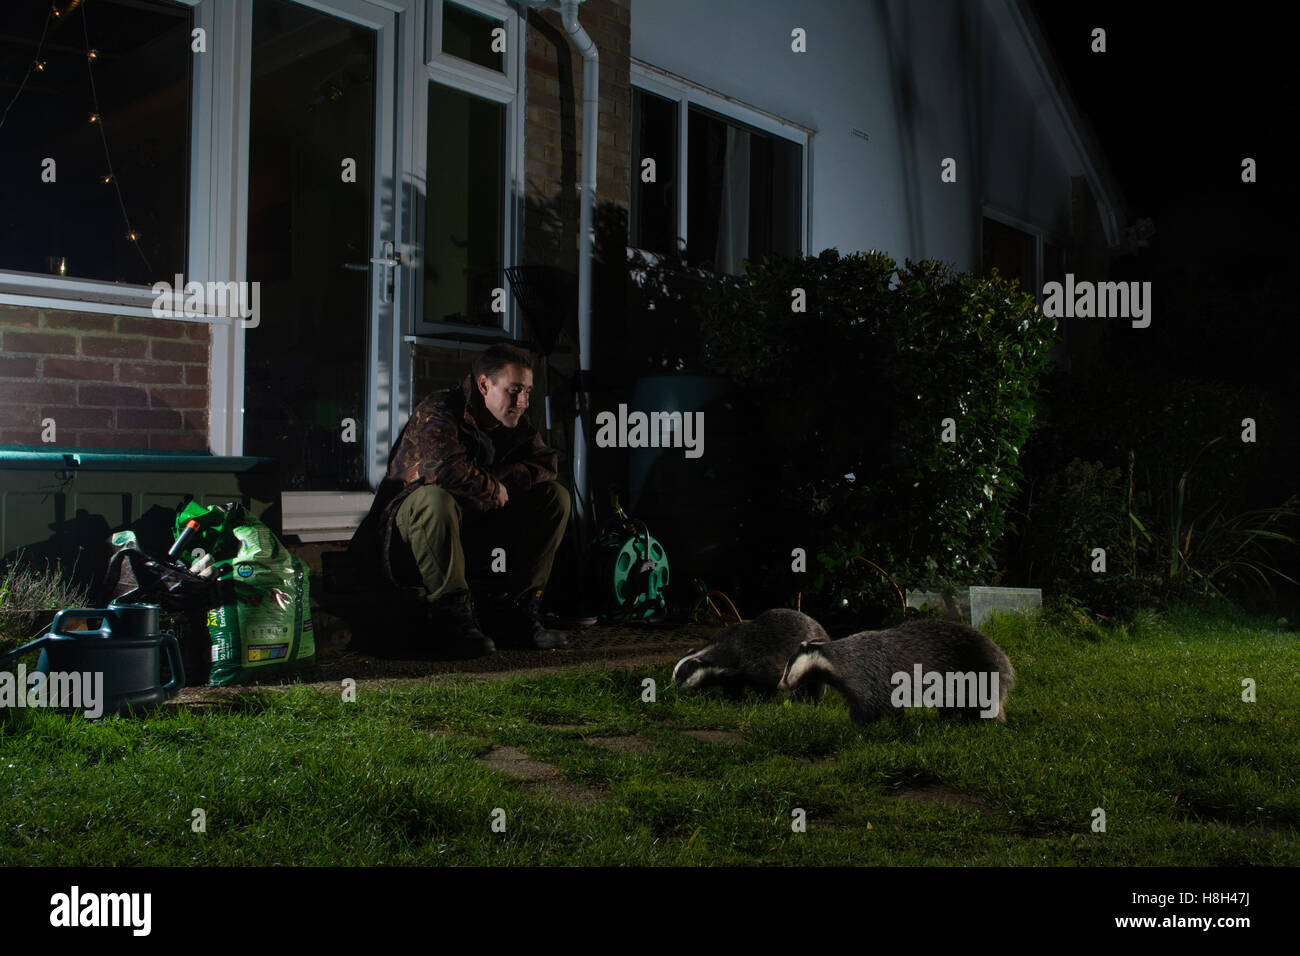 a man enjoying a close encounter with badgers in his garden at night, Hastings, East Sussex, UK - Stock Image